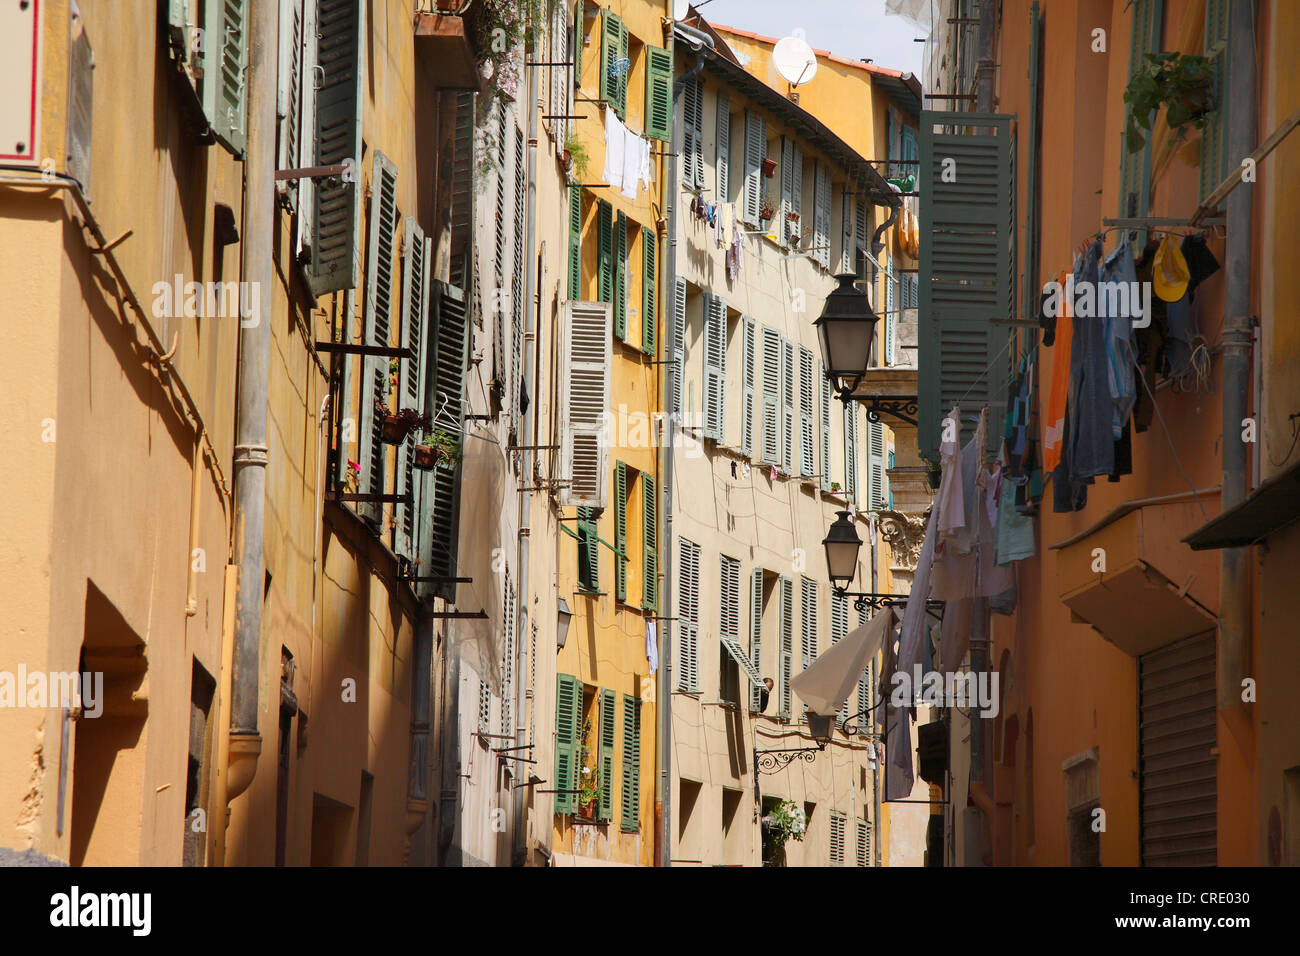 facades in old city of Nizza, France - Stock Image